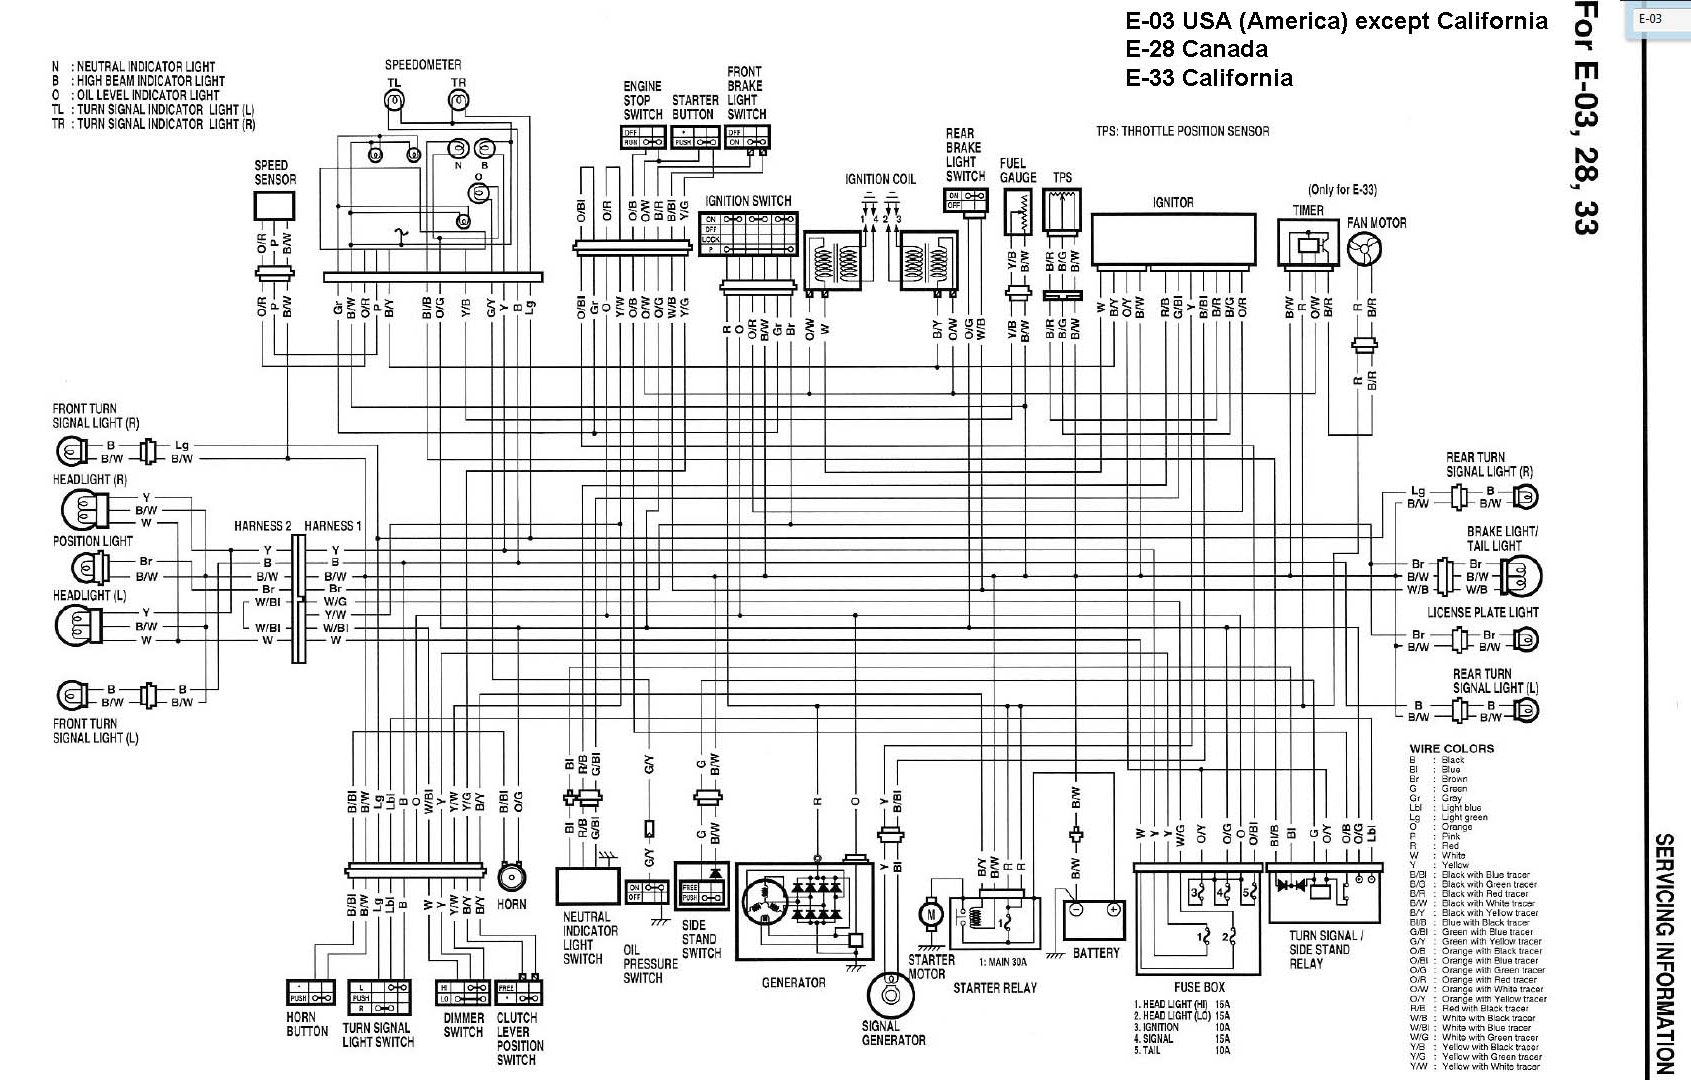 suzuki gsxf katana 600f 750f 1100f skhema elektroprovodki wiring diagram 4?resized665%2C425 gsxr 750 wiring diagram efcaviation com 2008 suzuki gsxr 600 wiring diagram at webbmarketing.co